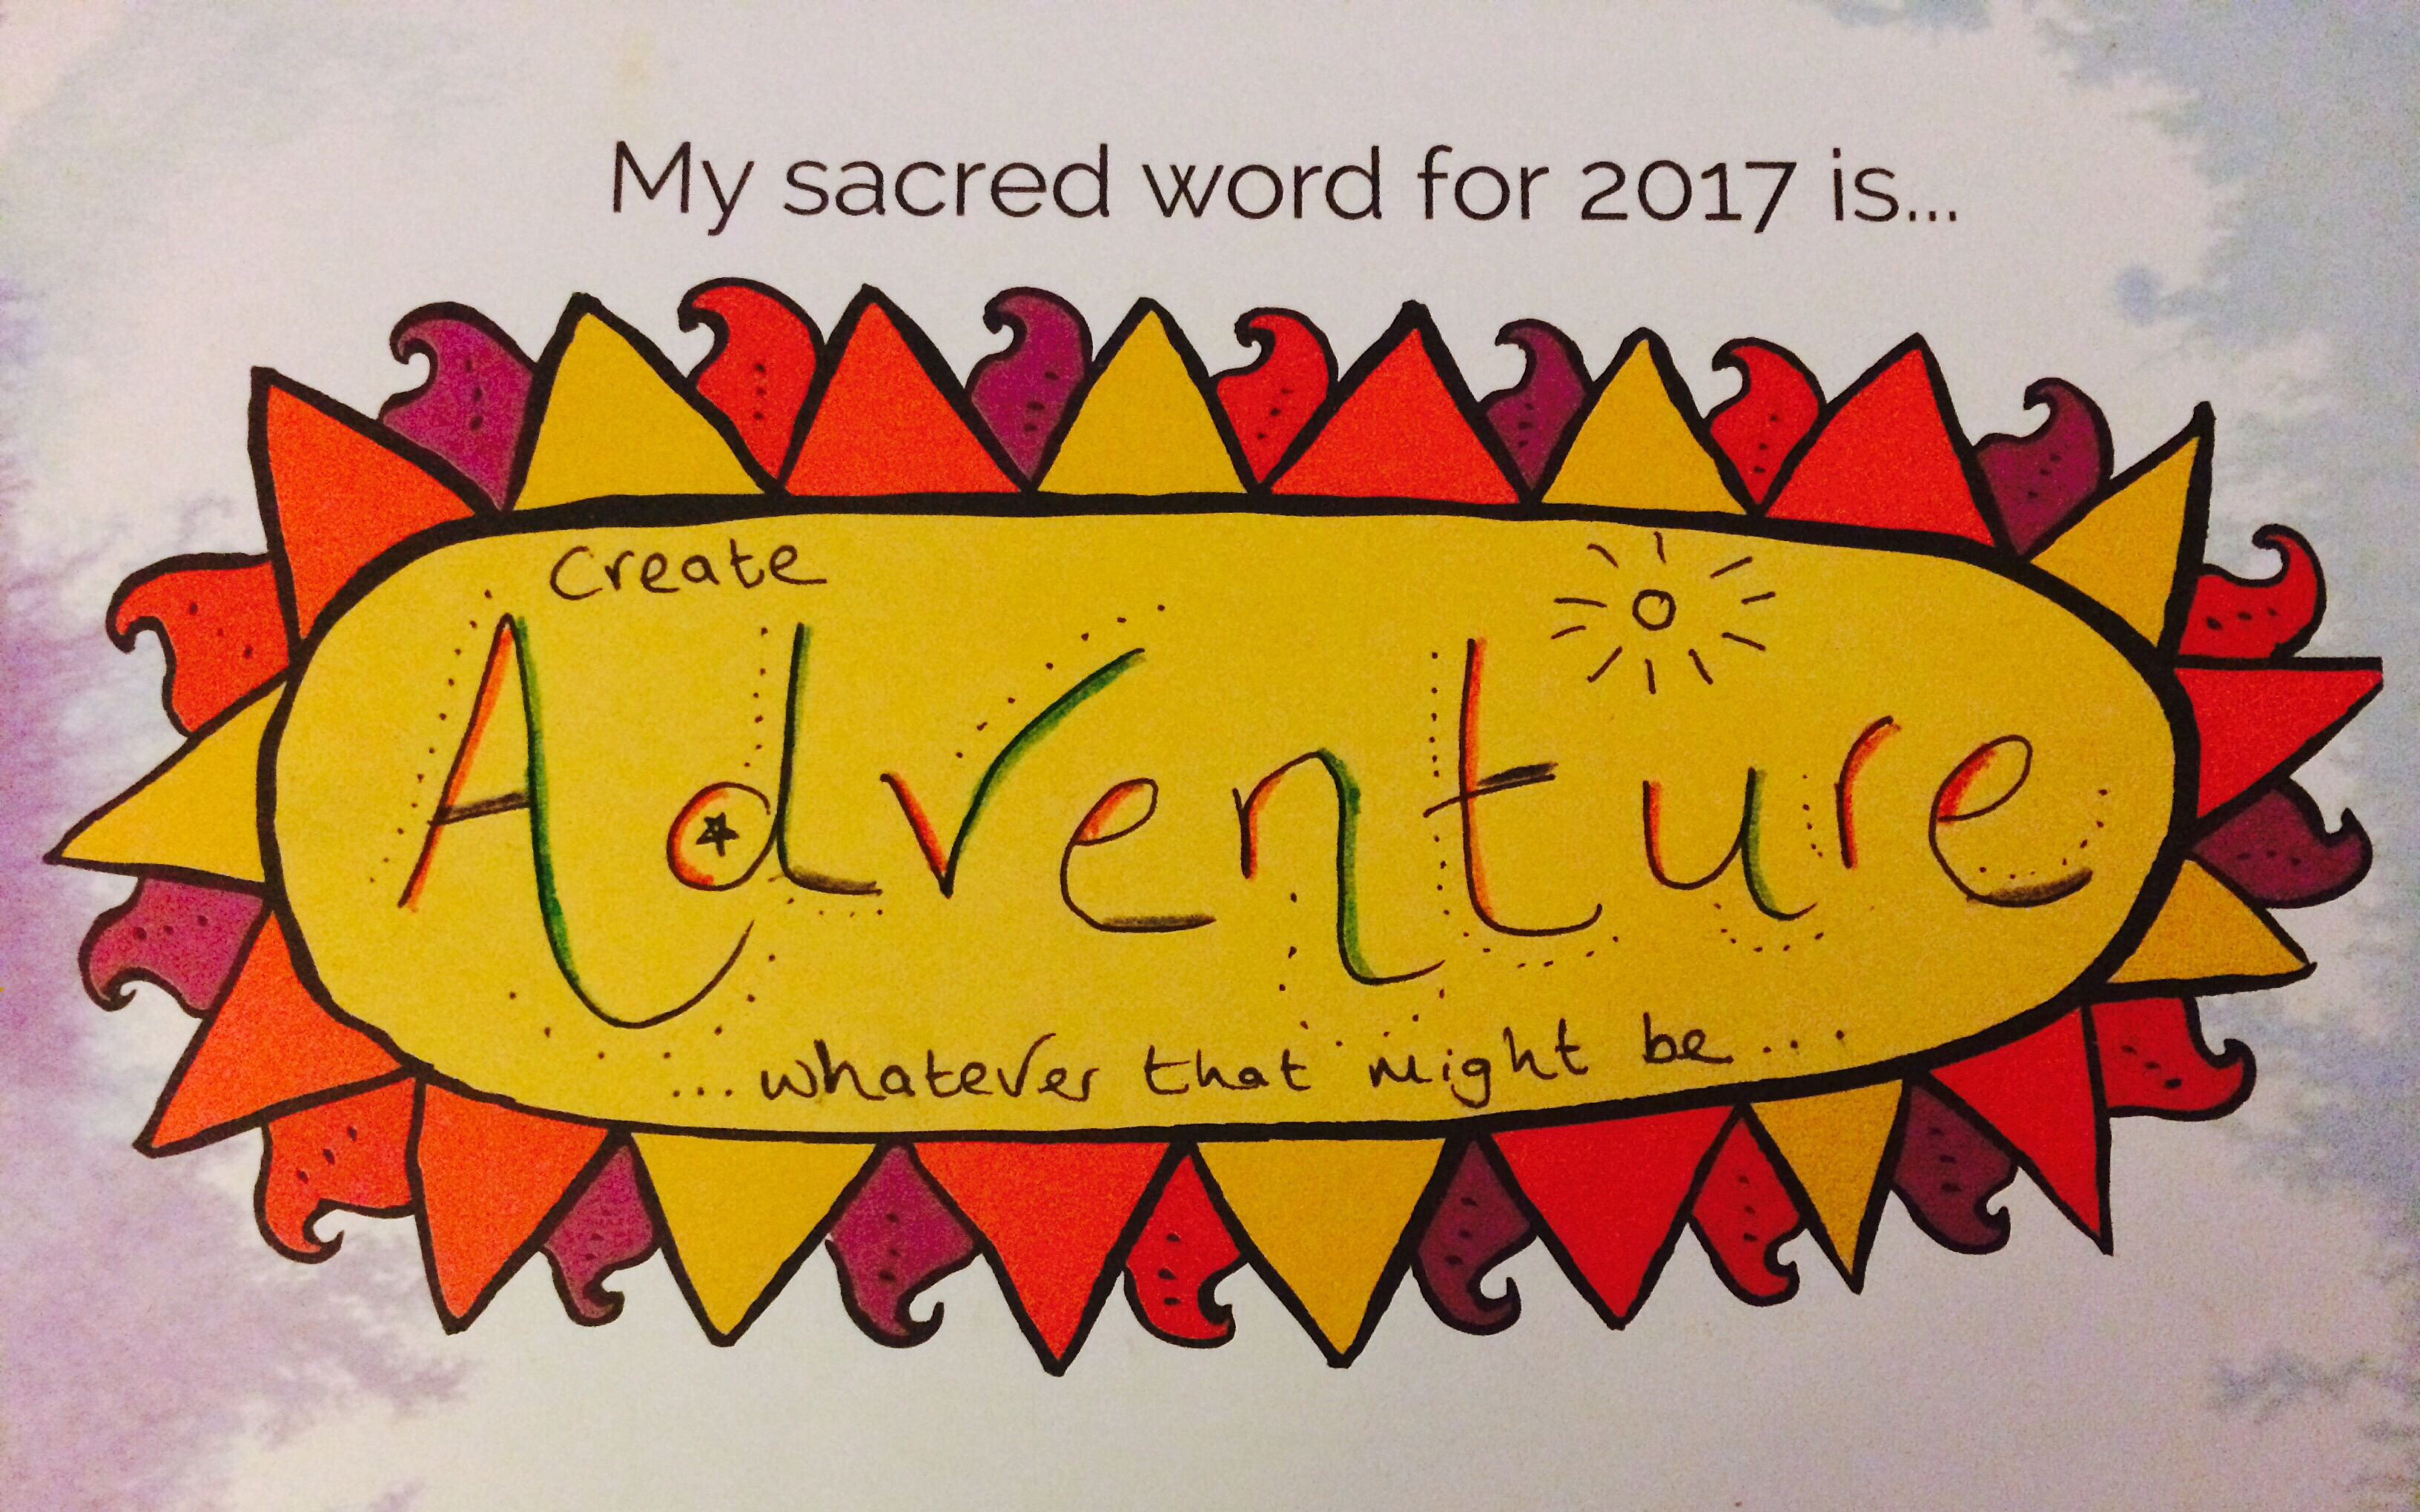 My favourite quote - which I've written in my 2017 training journal - is